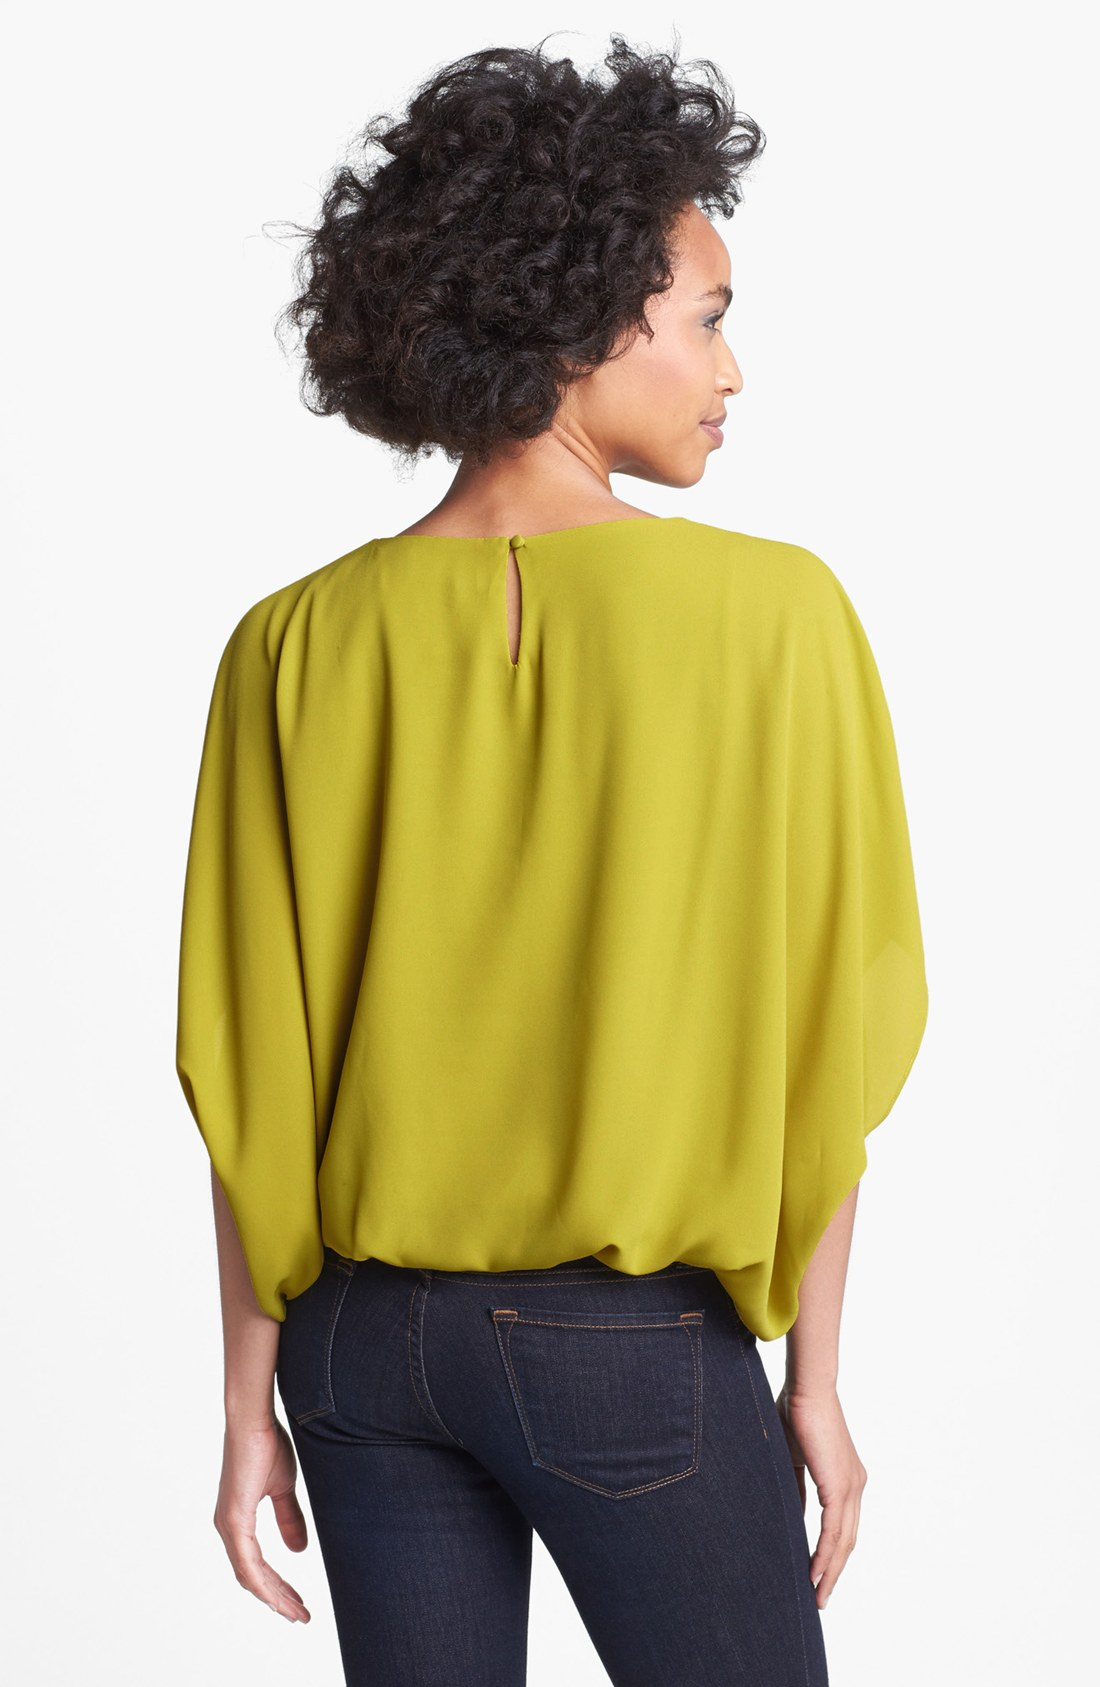 Vince Camuto Batwing Blouse In Yellow Avocado Lyst